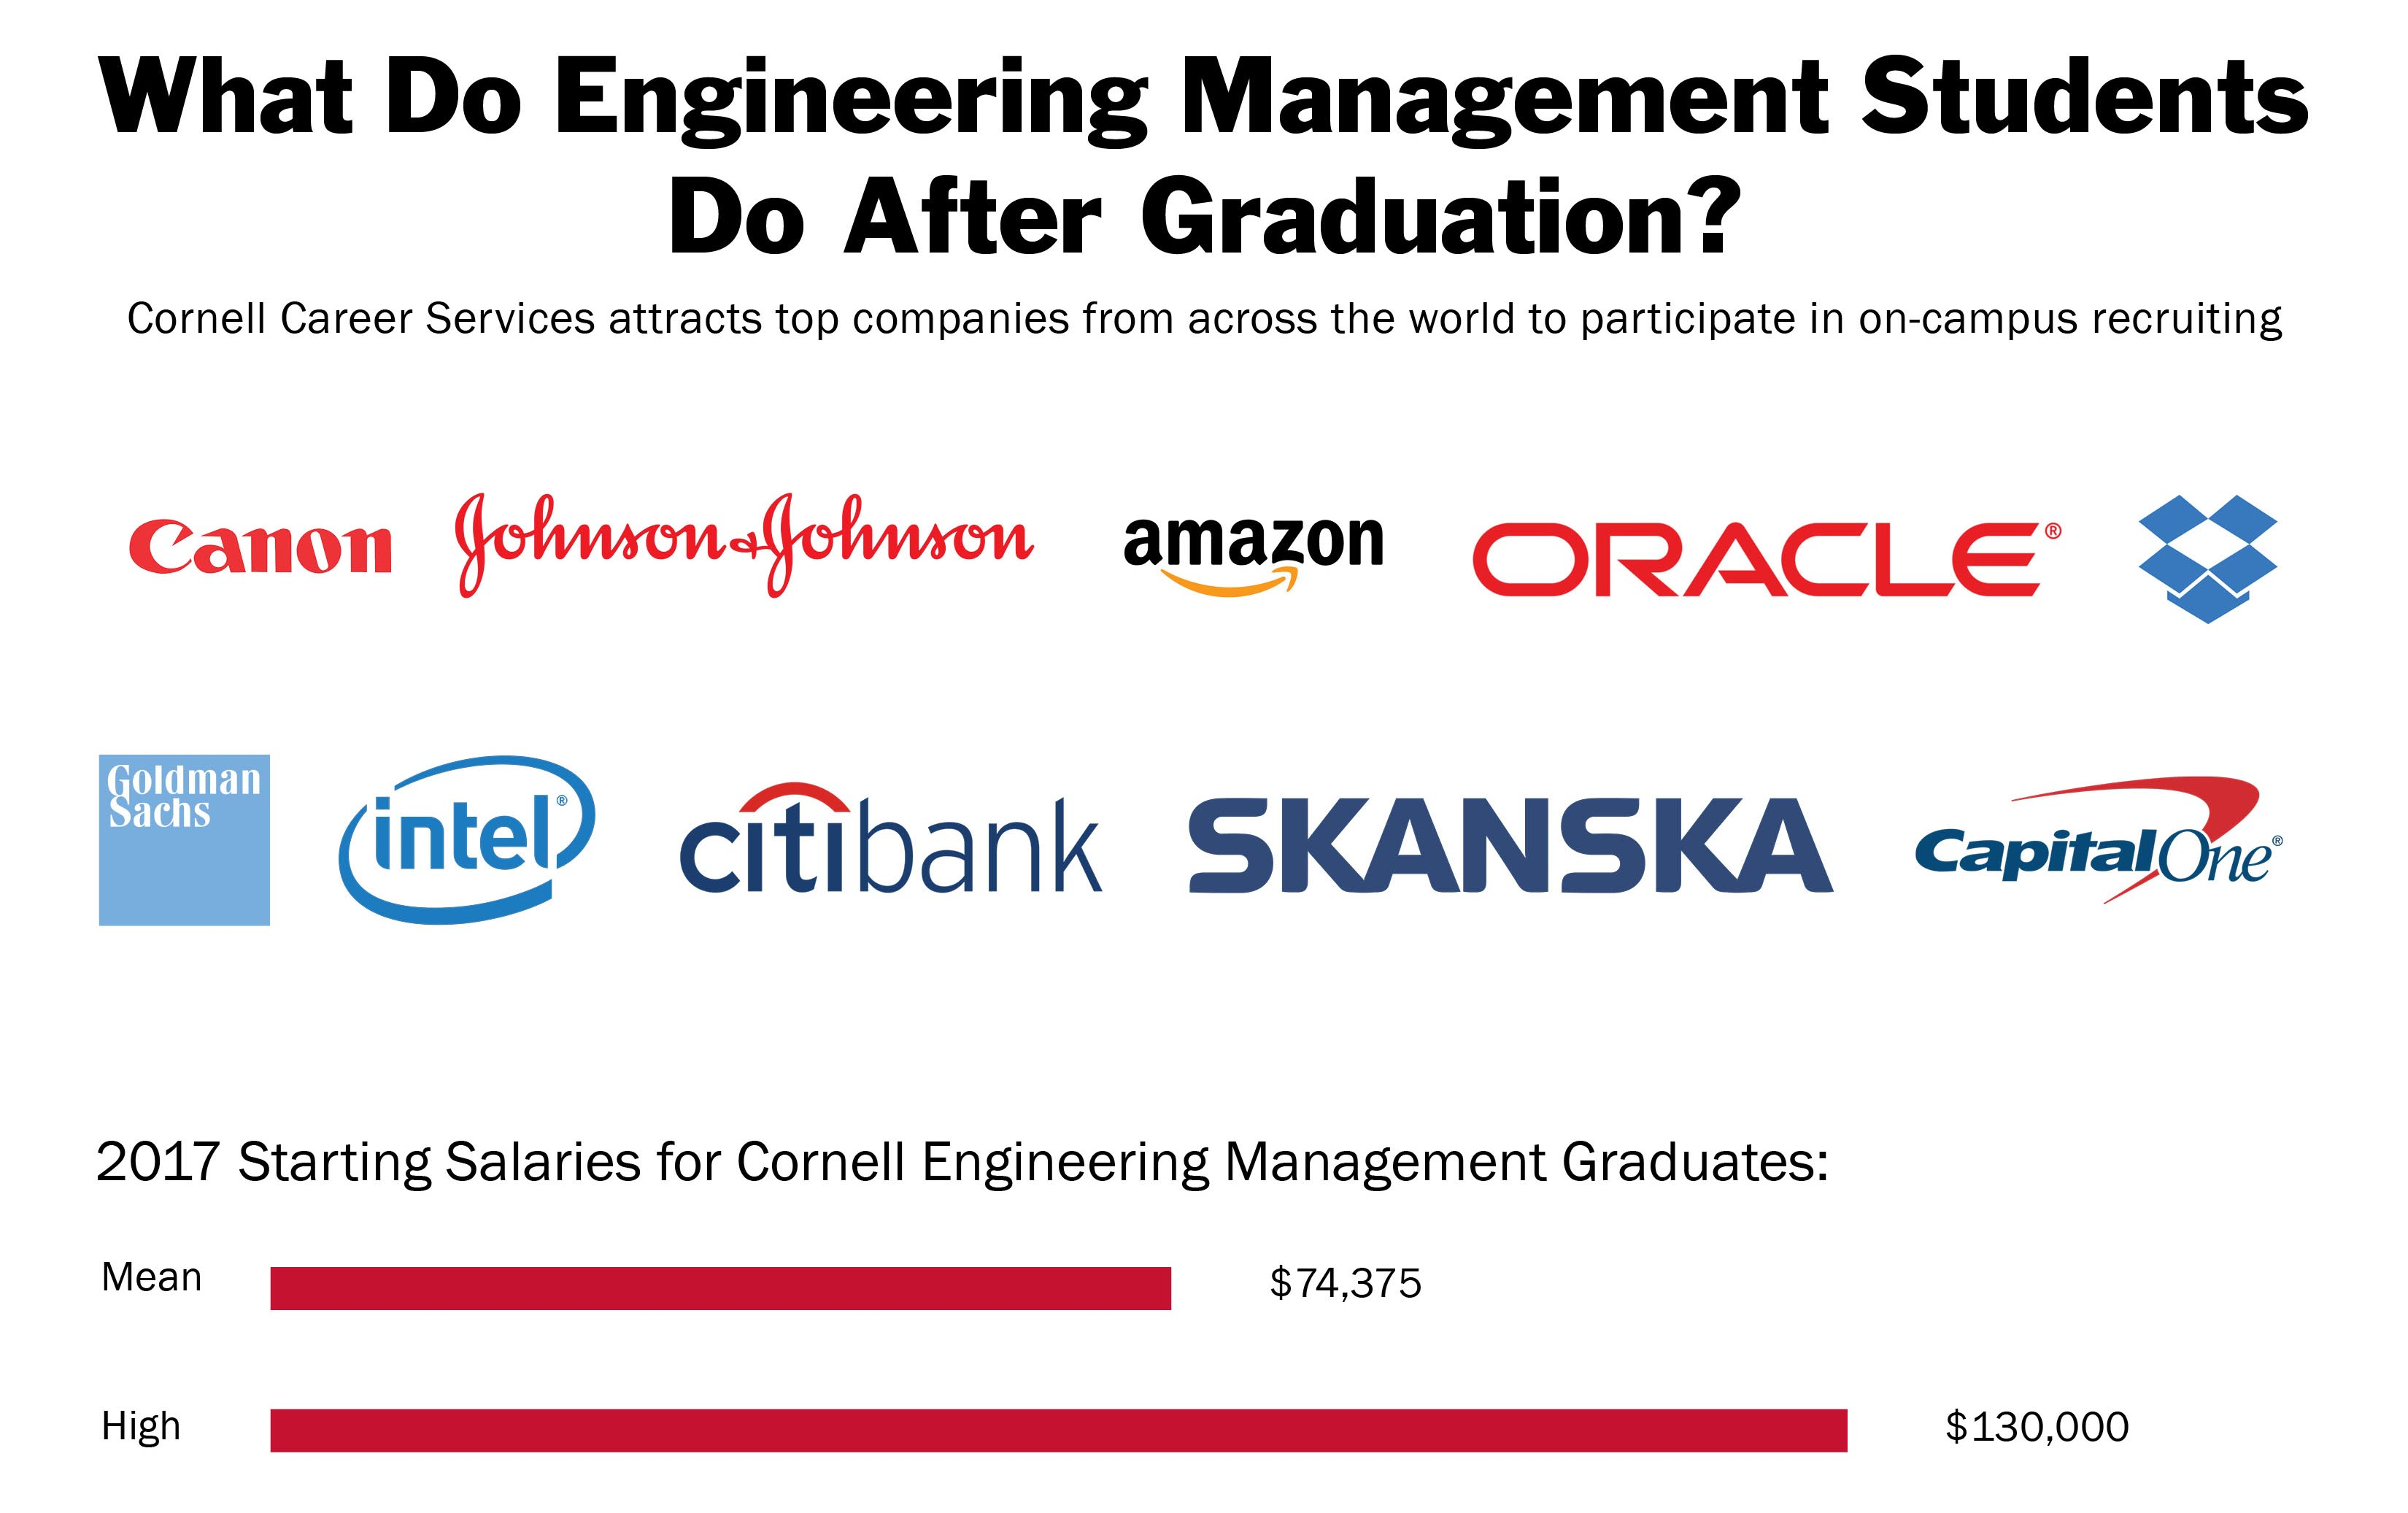 Where do Engineering Management students go after graduation? Cornell Career Services attracts top companies from across the world to participate in on-campus recruiting.  Canon Johnson & Johnson Amazon Oracle Dropbox Goldman Sachs Intel Citibank Skanska Capital One 2017 Starting Salaries for Cornell Engineering Management Graduates: Mean: $74,375 High: $130,000